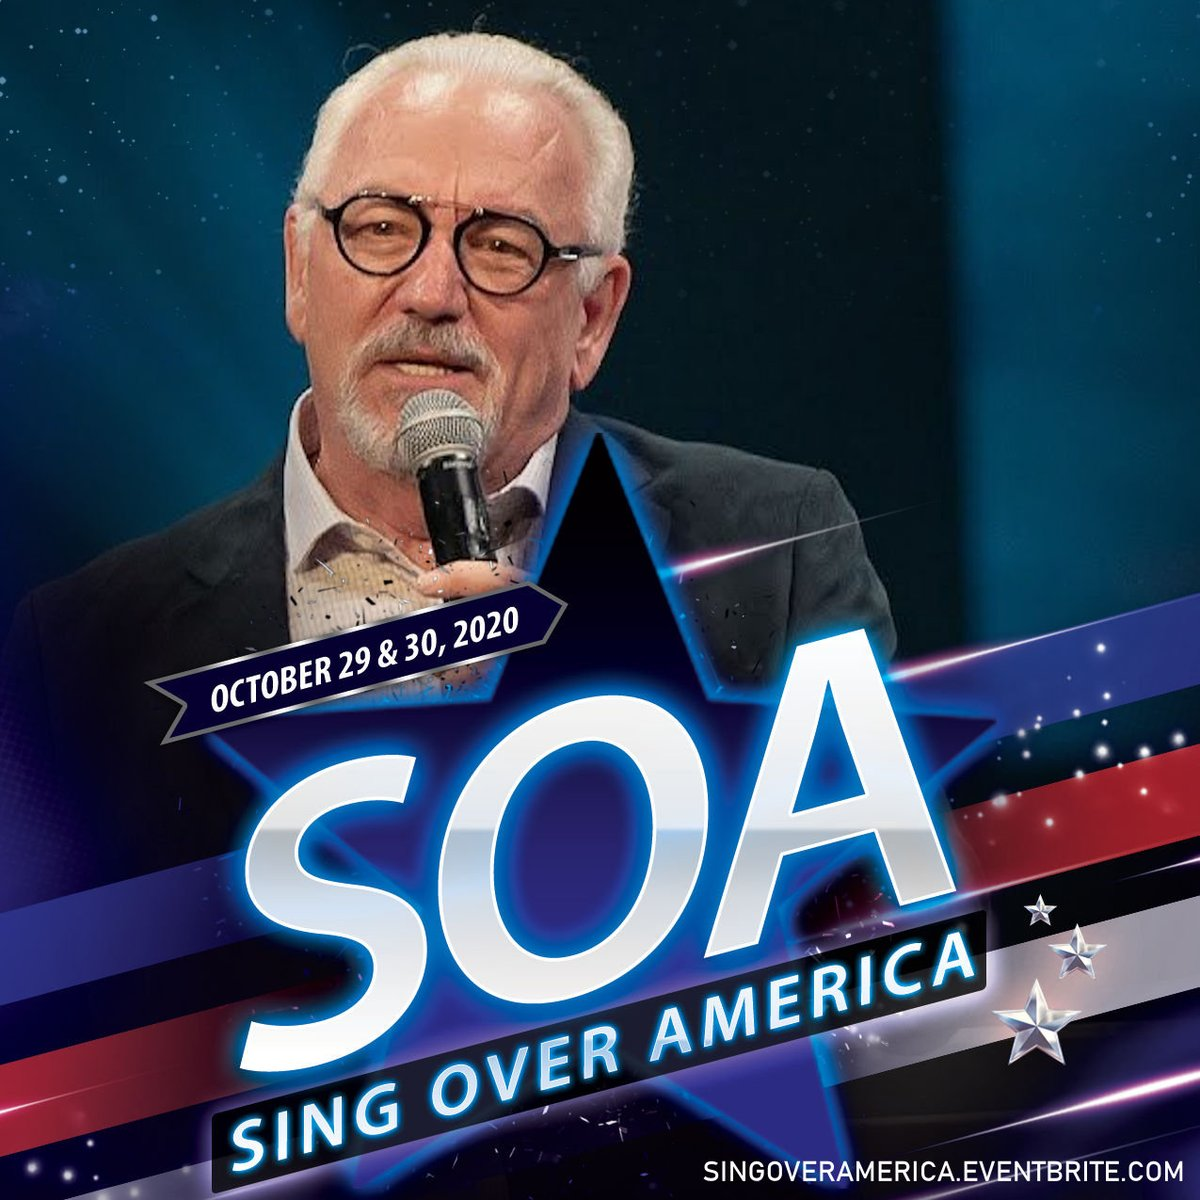 7 days left to buy your #tickets! Join Don Moen, Paul Wilbur, Gateway Worship, Brandon Roberson and Terry MacAlmon for the national #worship #event in #Dallas, TX: Sing Over #America! https://t.co/fvXtmho8mn https://t.co/7WLAfLZpxs